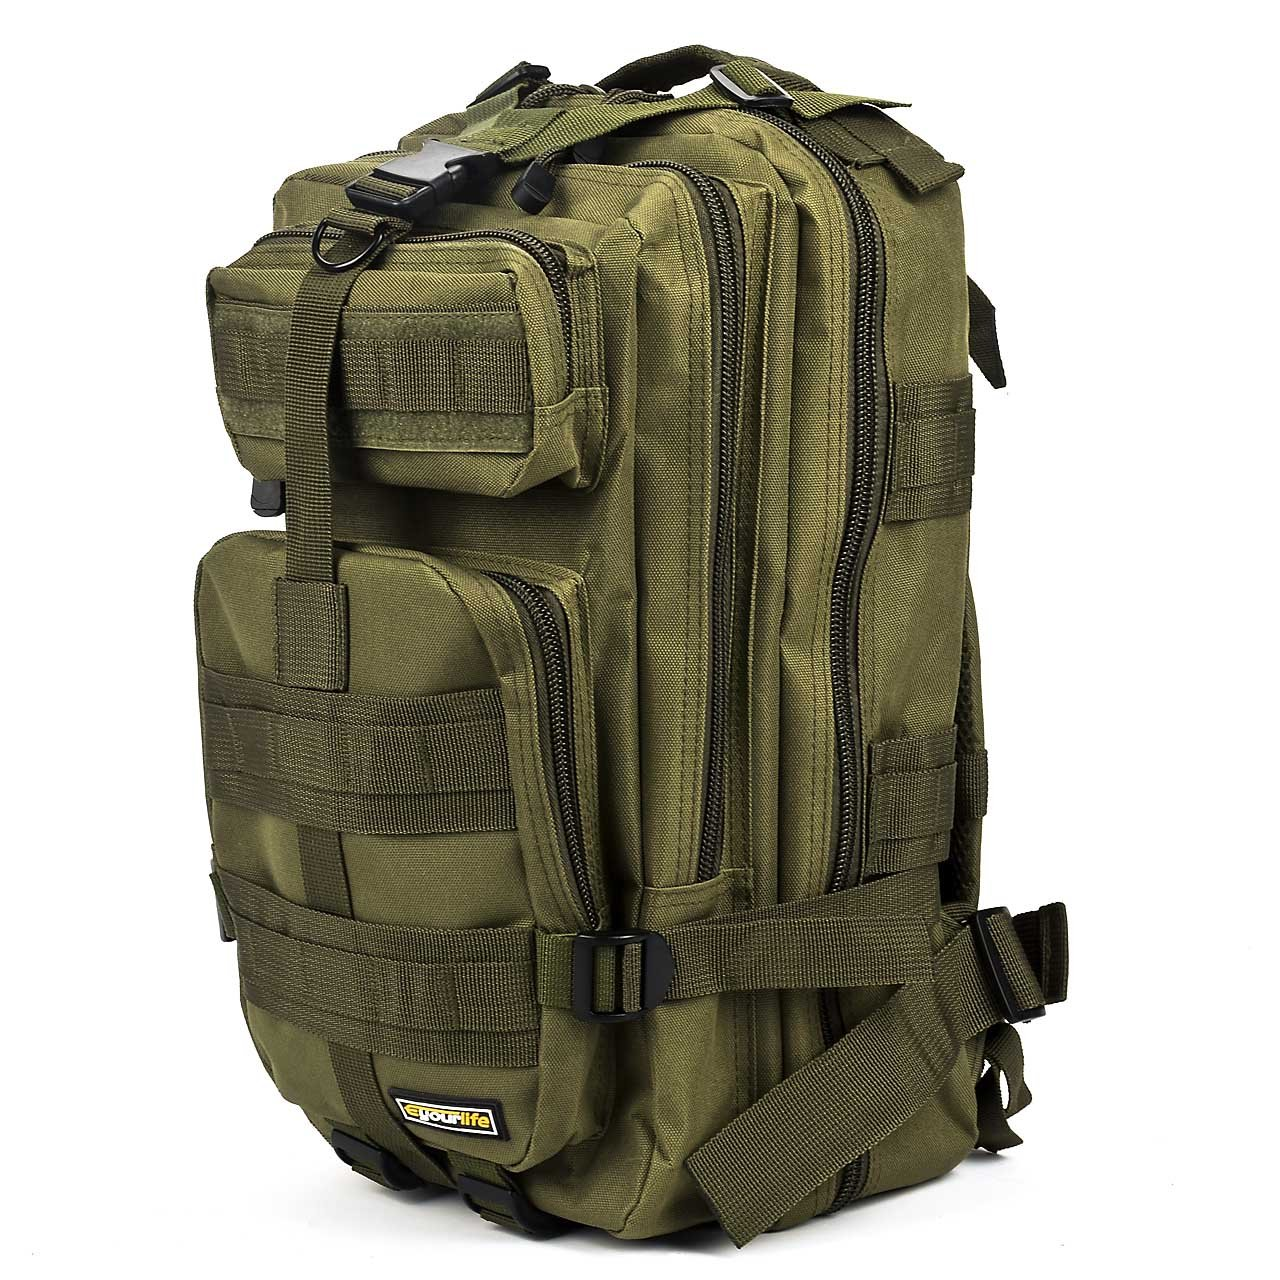 ARMY GREEN 20L Hiking Travel Military MOLLE Survival Day Bag ...